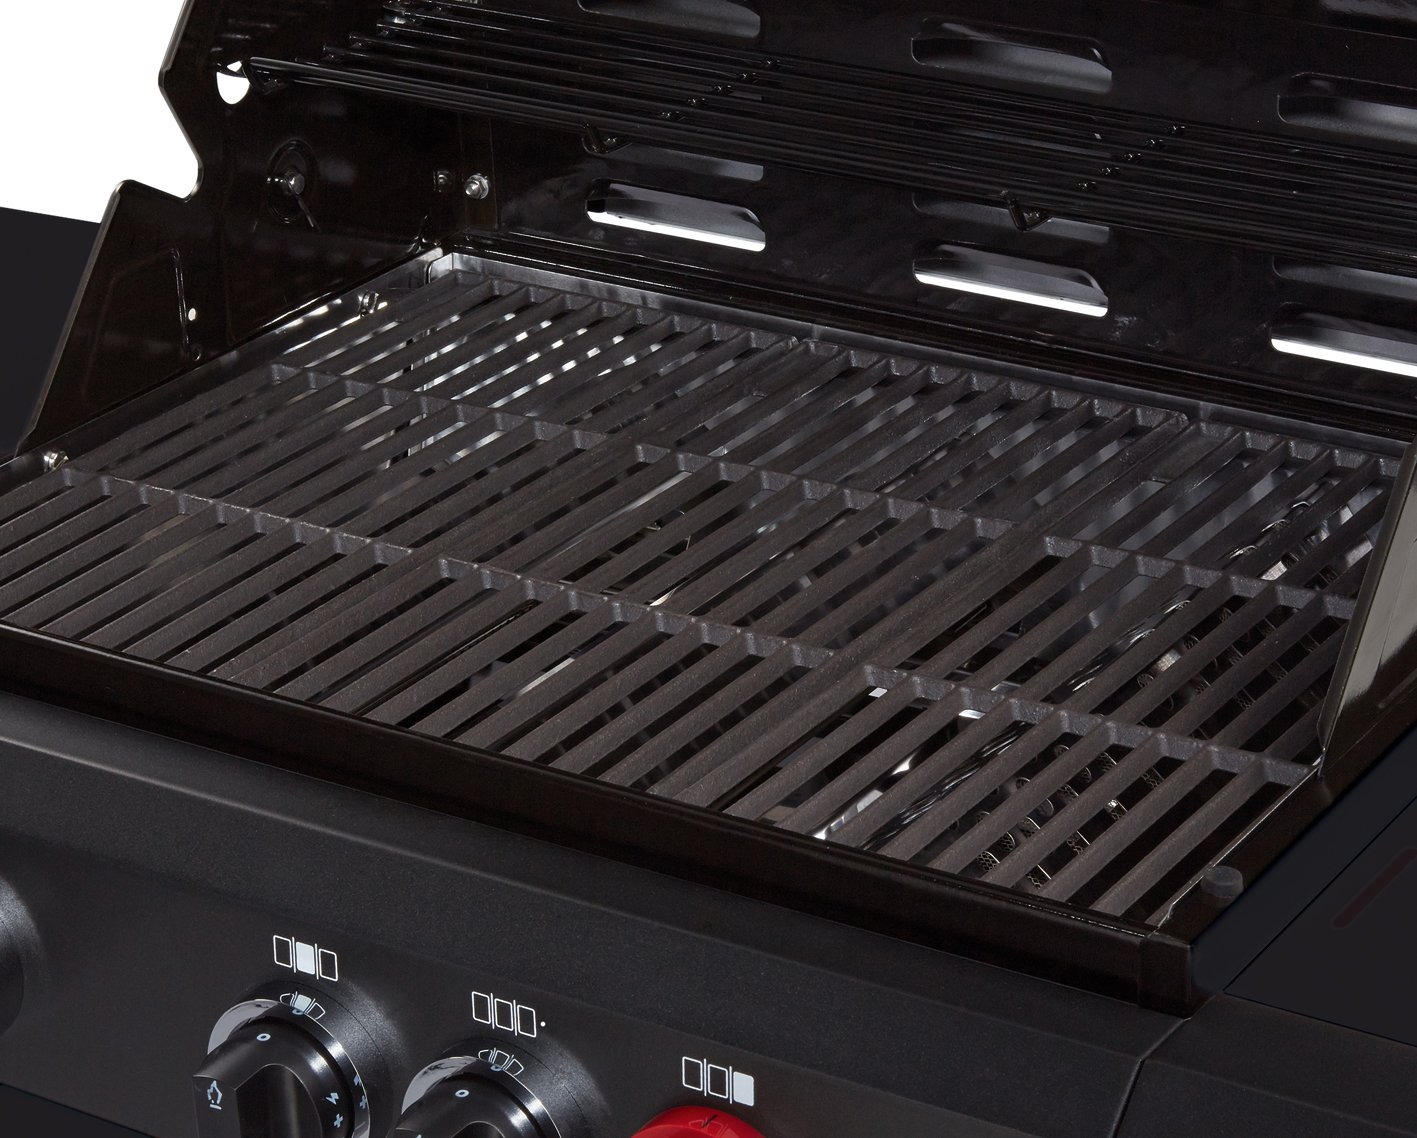 Enders Gasgrill Monroe 3 Sik Turbo Test : Enders gasgrill kansas black k turbo amazon garten